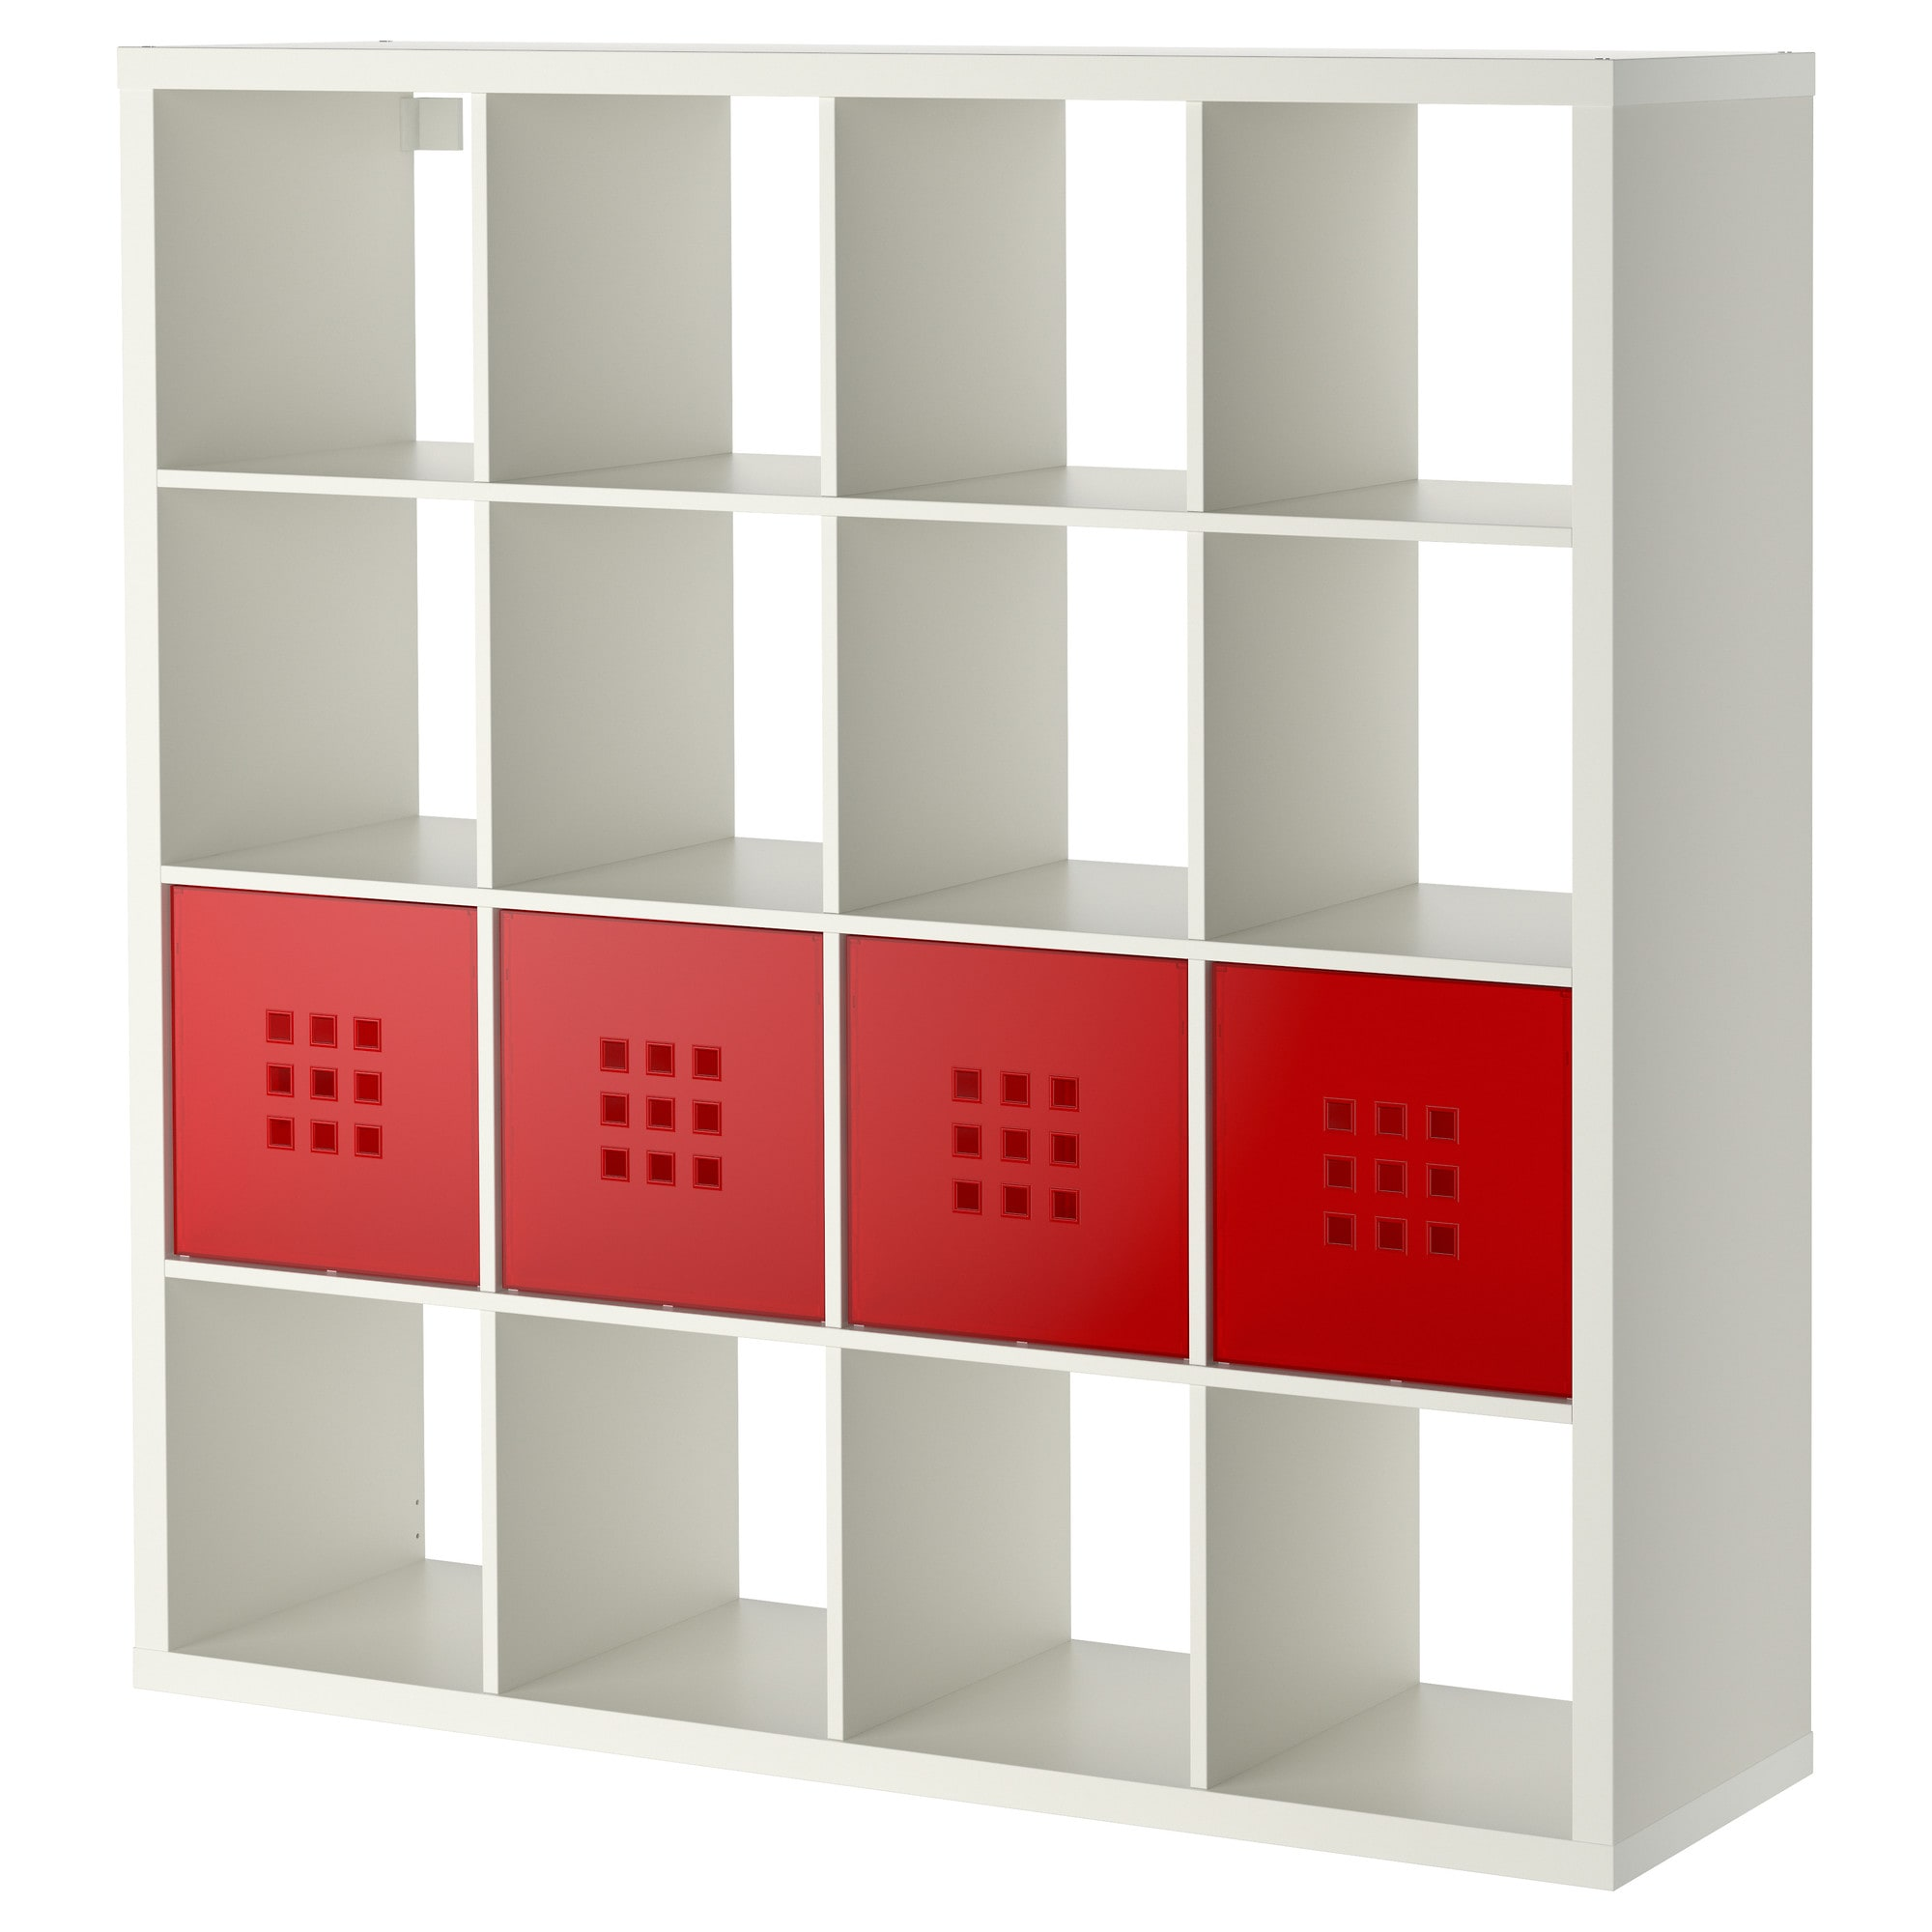 kallax shelving unit with 4 inserts - ikea